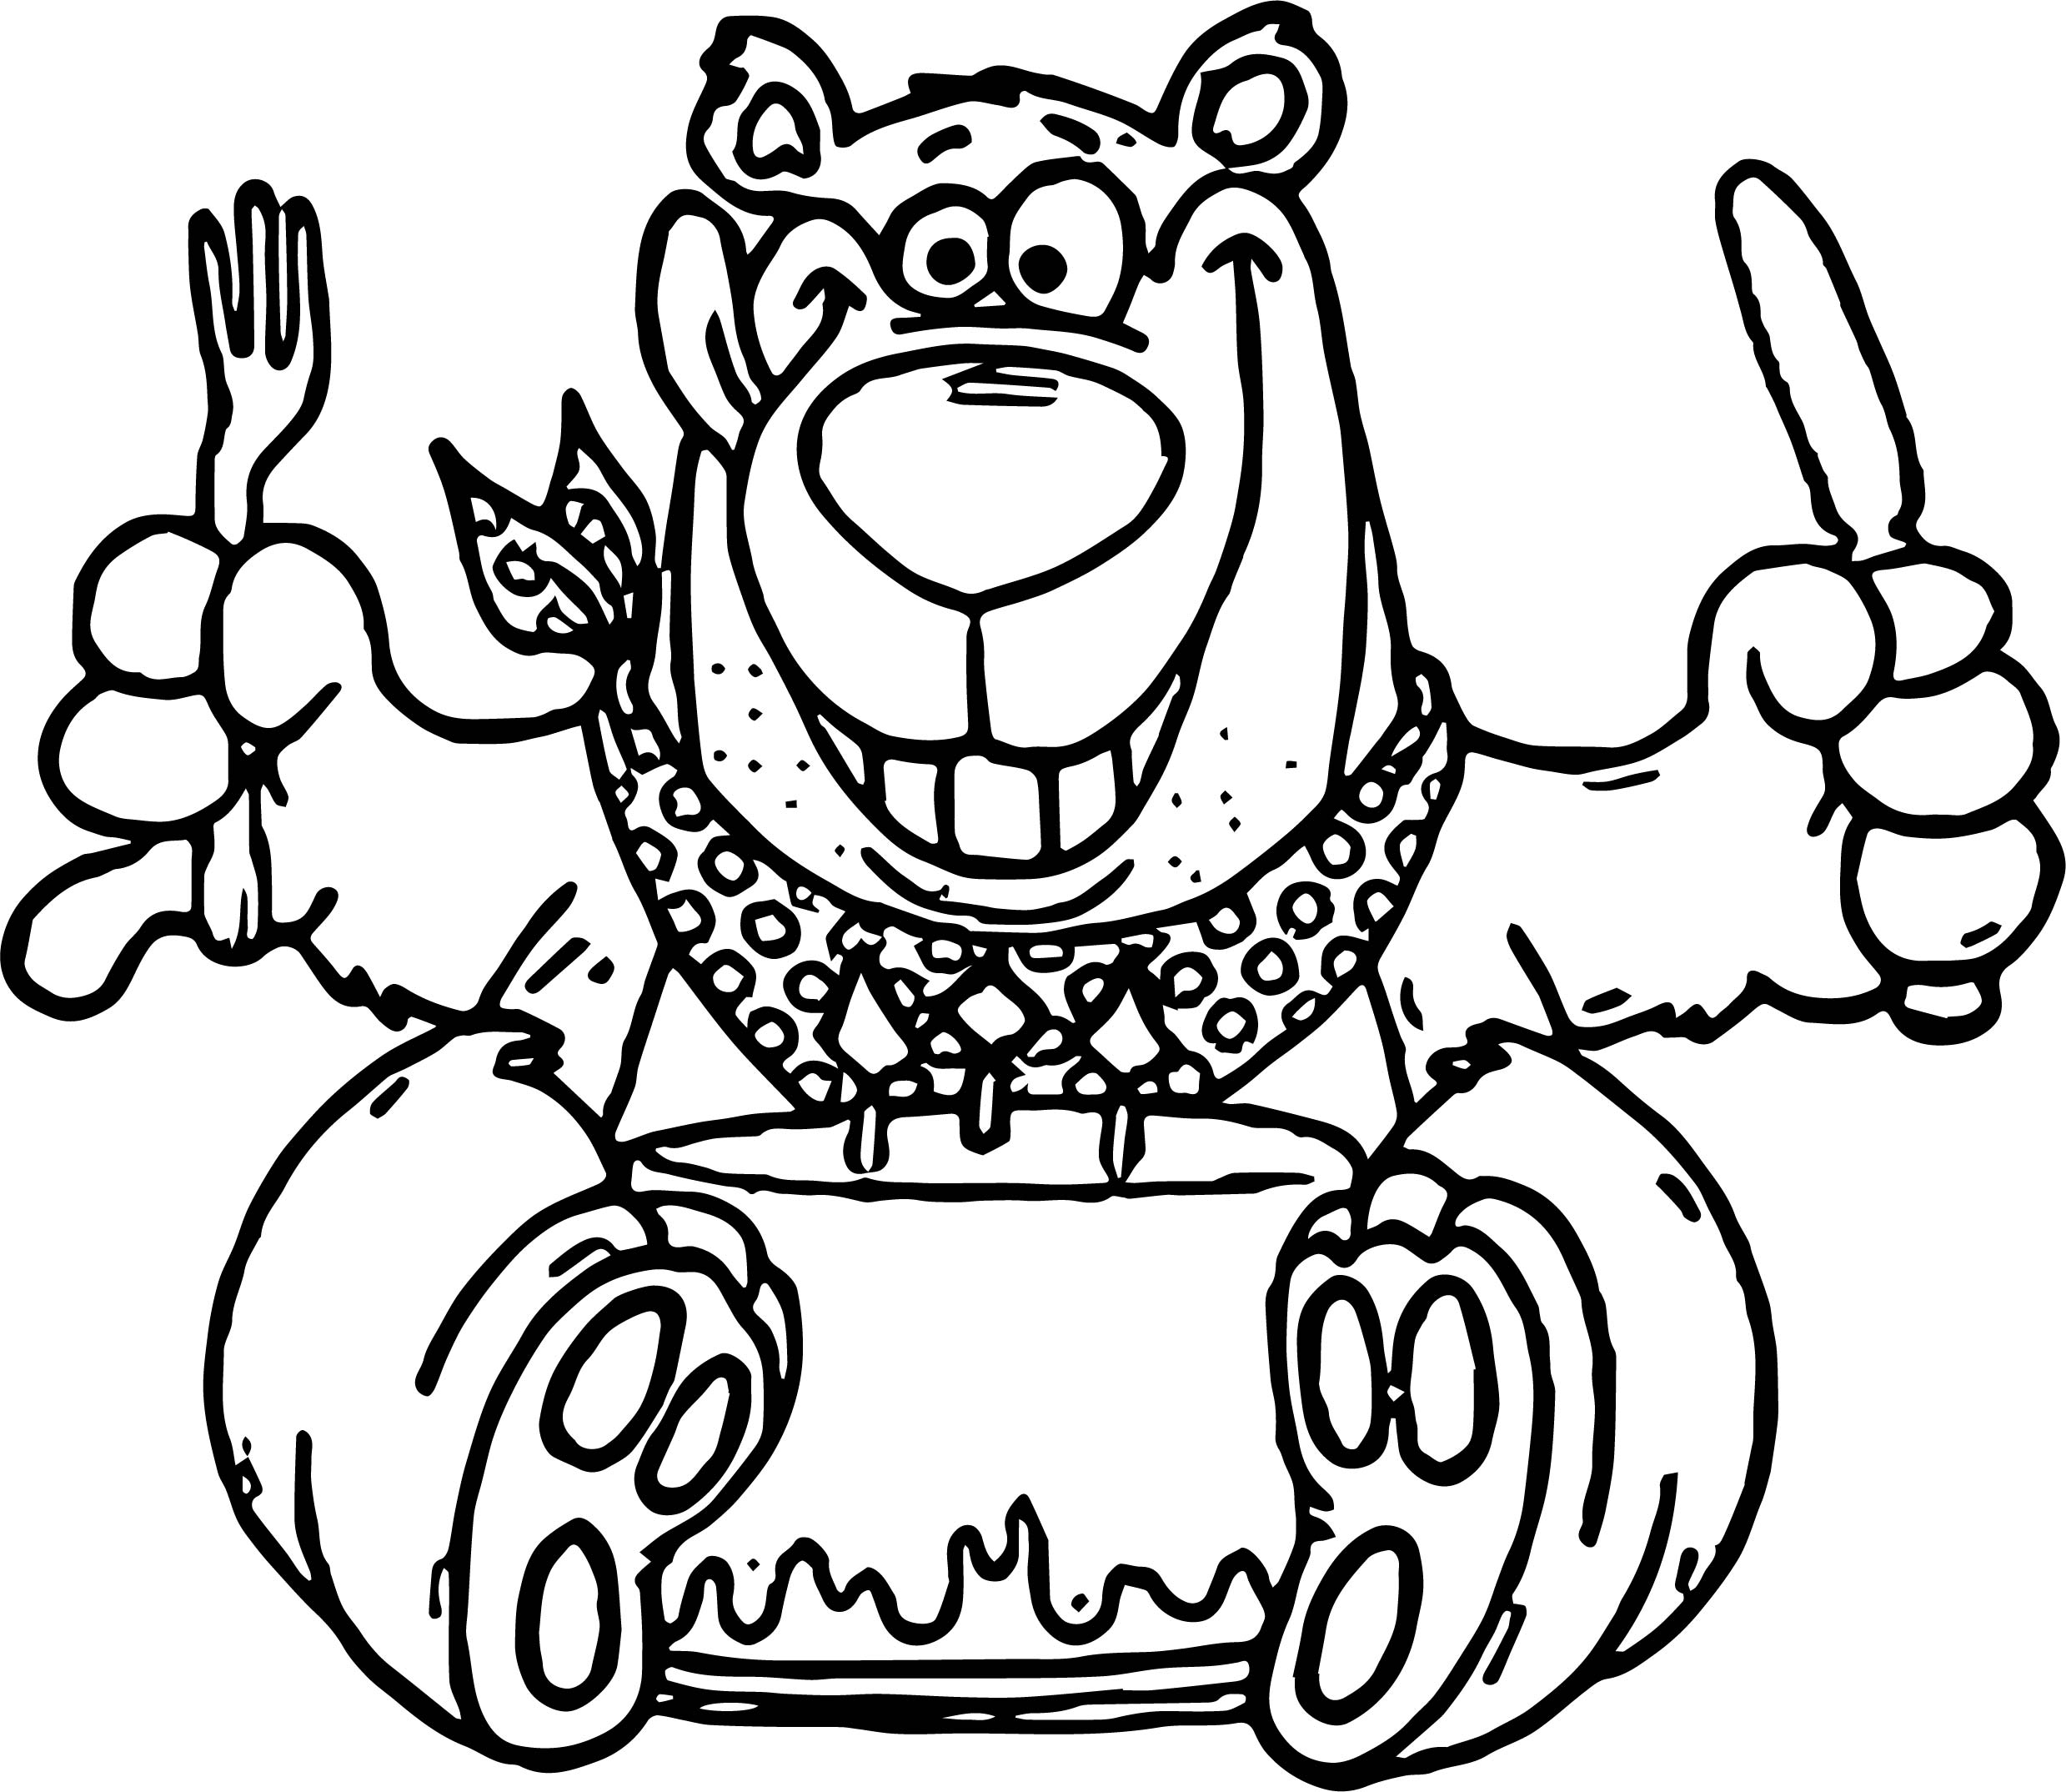 birthday coloring pages - birthday bear cake coloring page